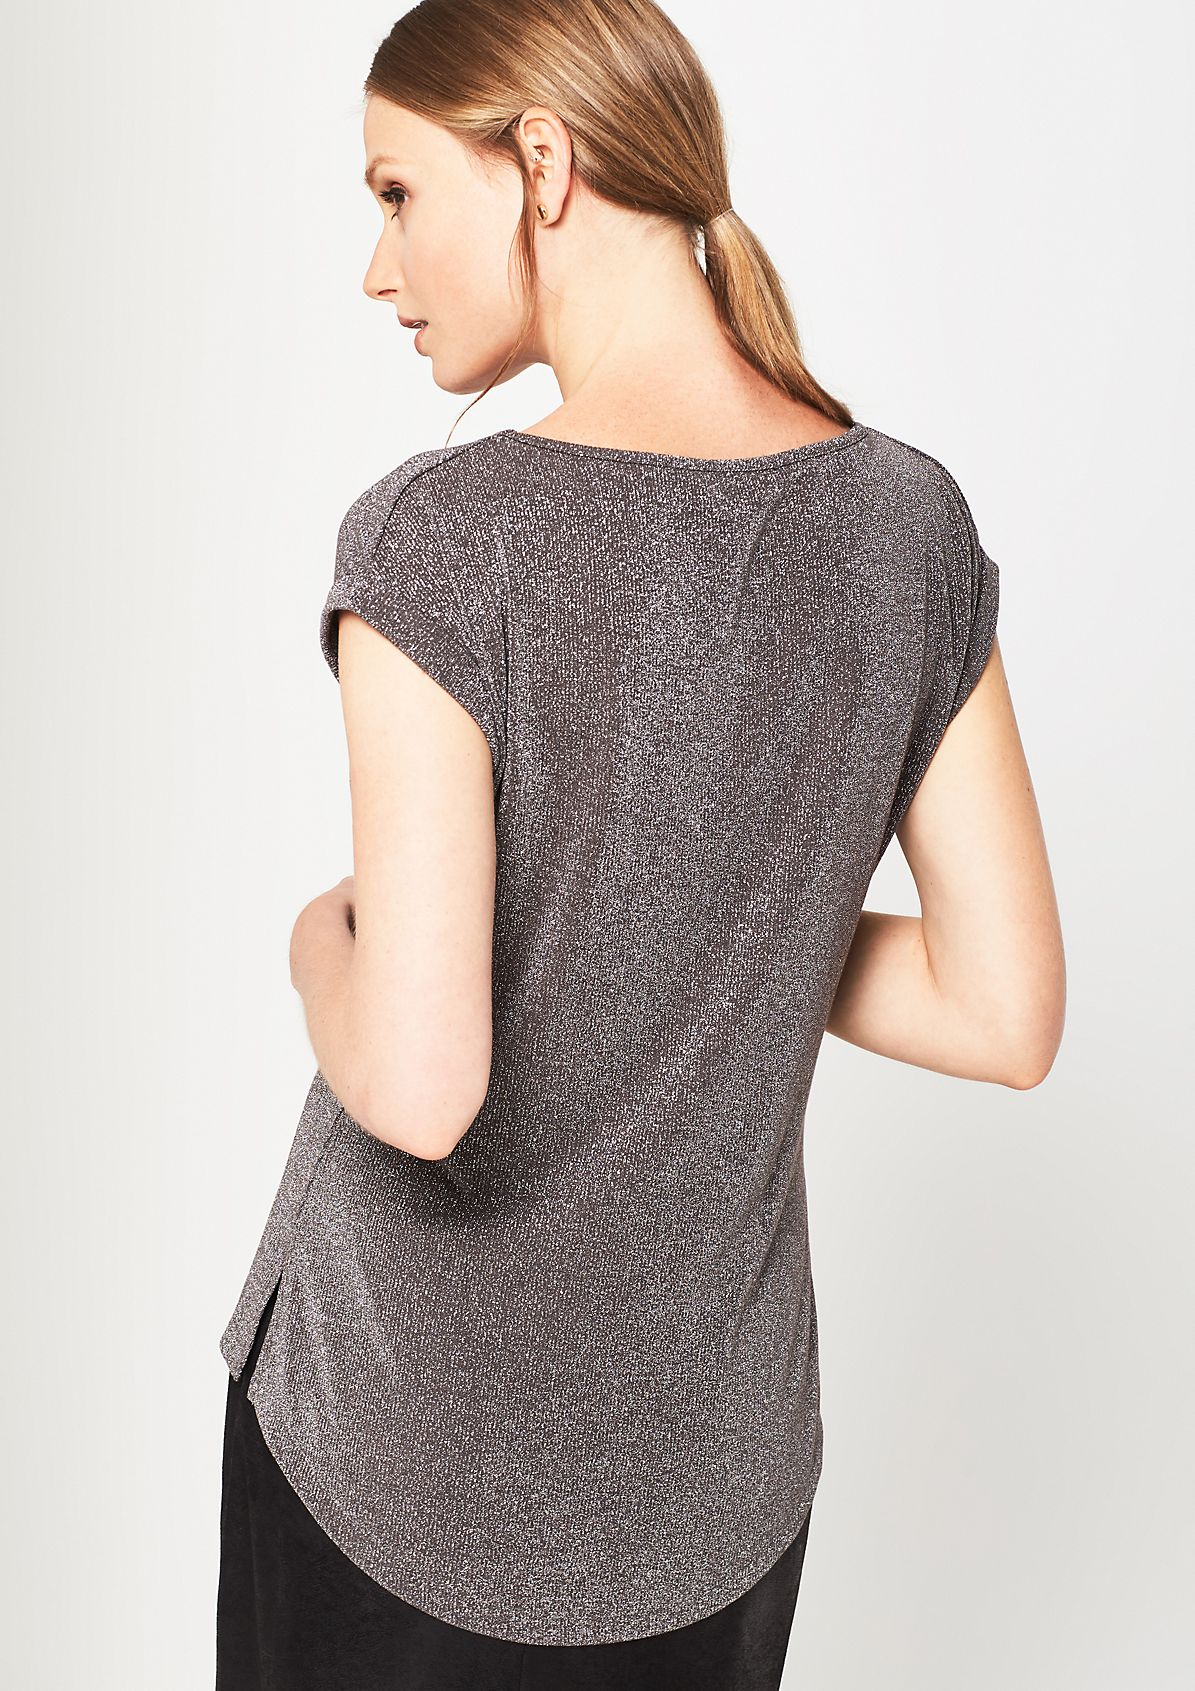 Short sleeve knit top in glittery effect yarn from comma